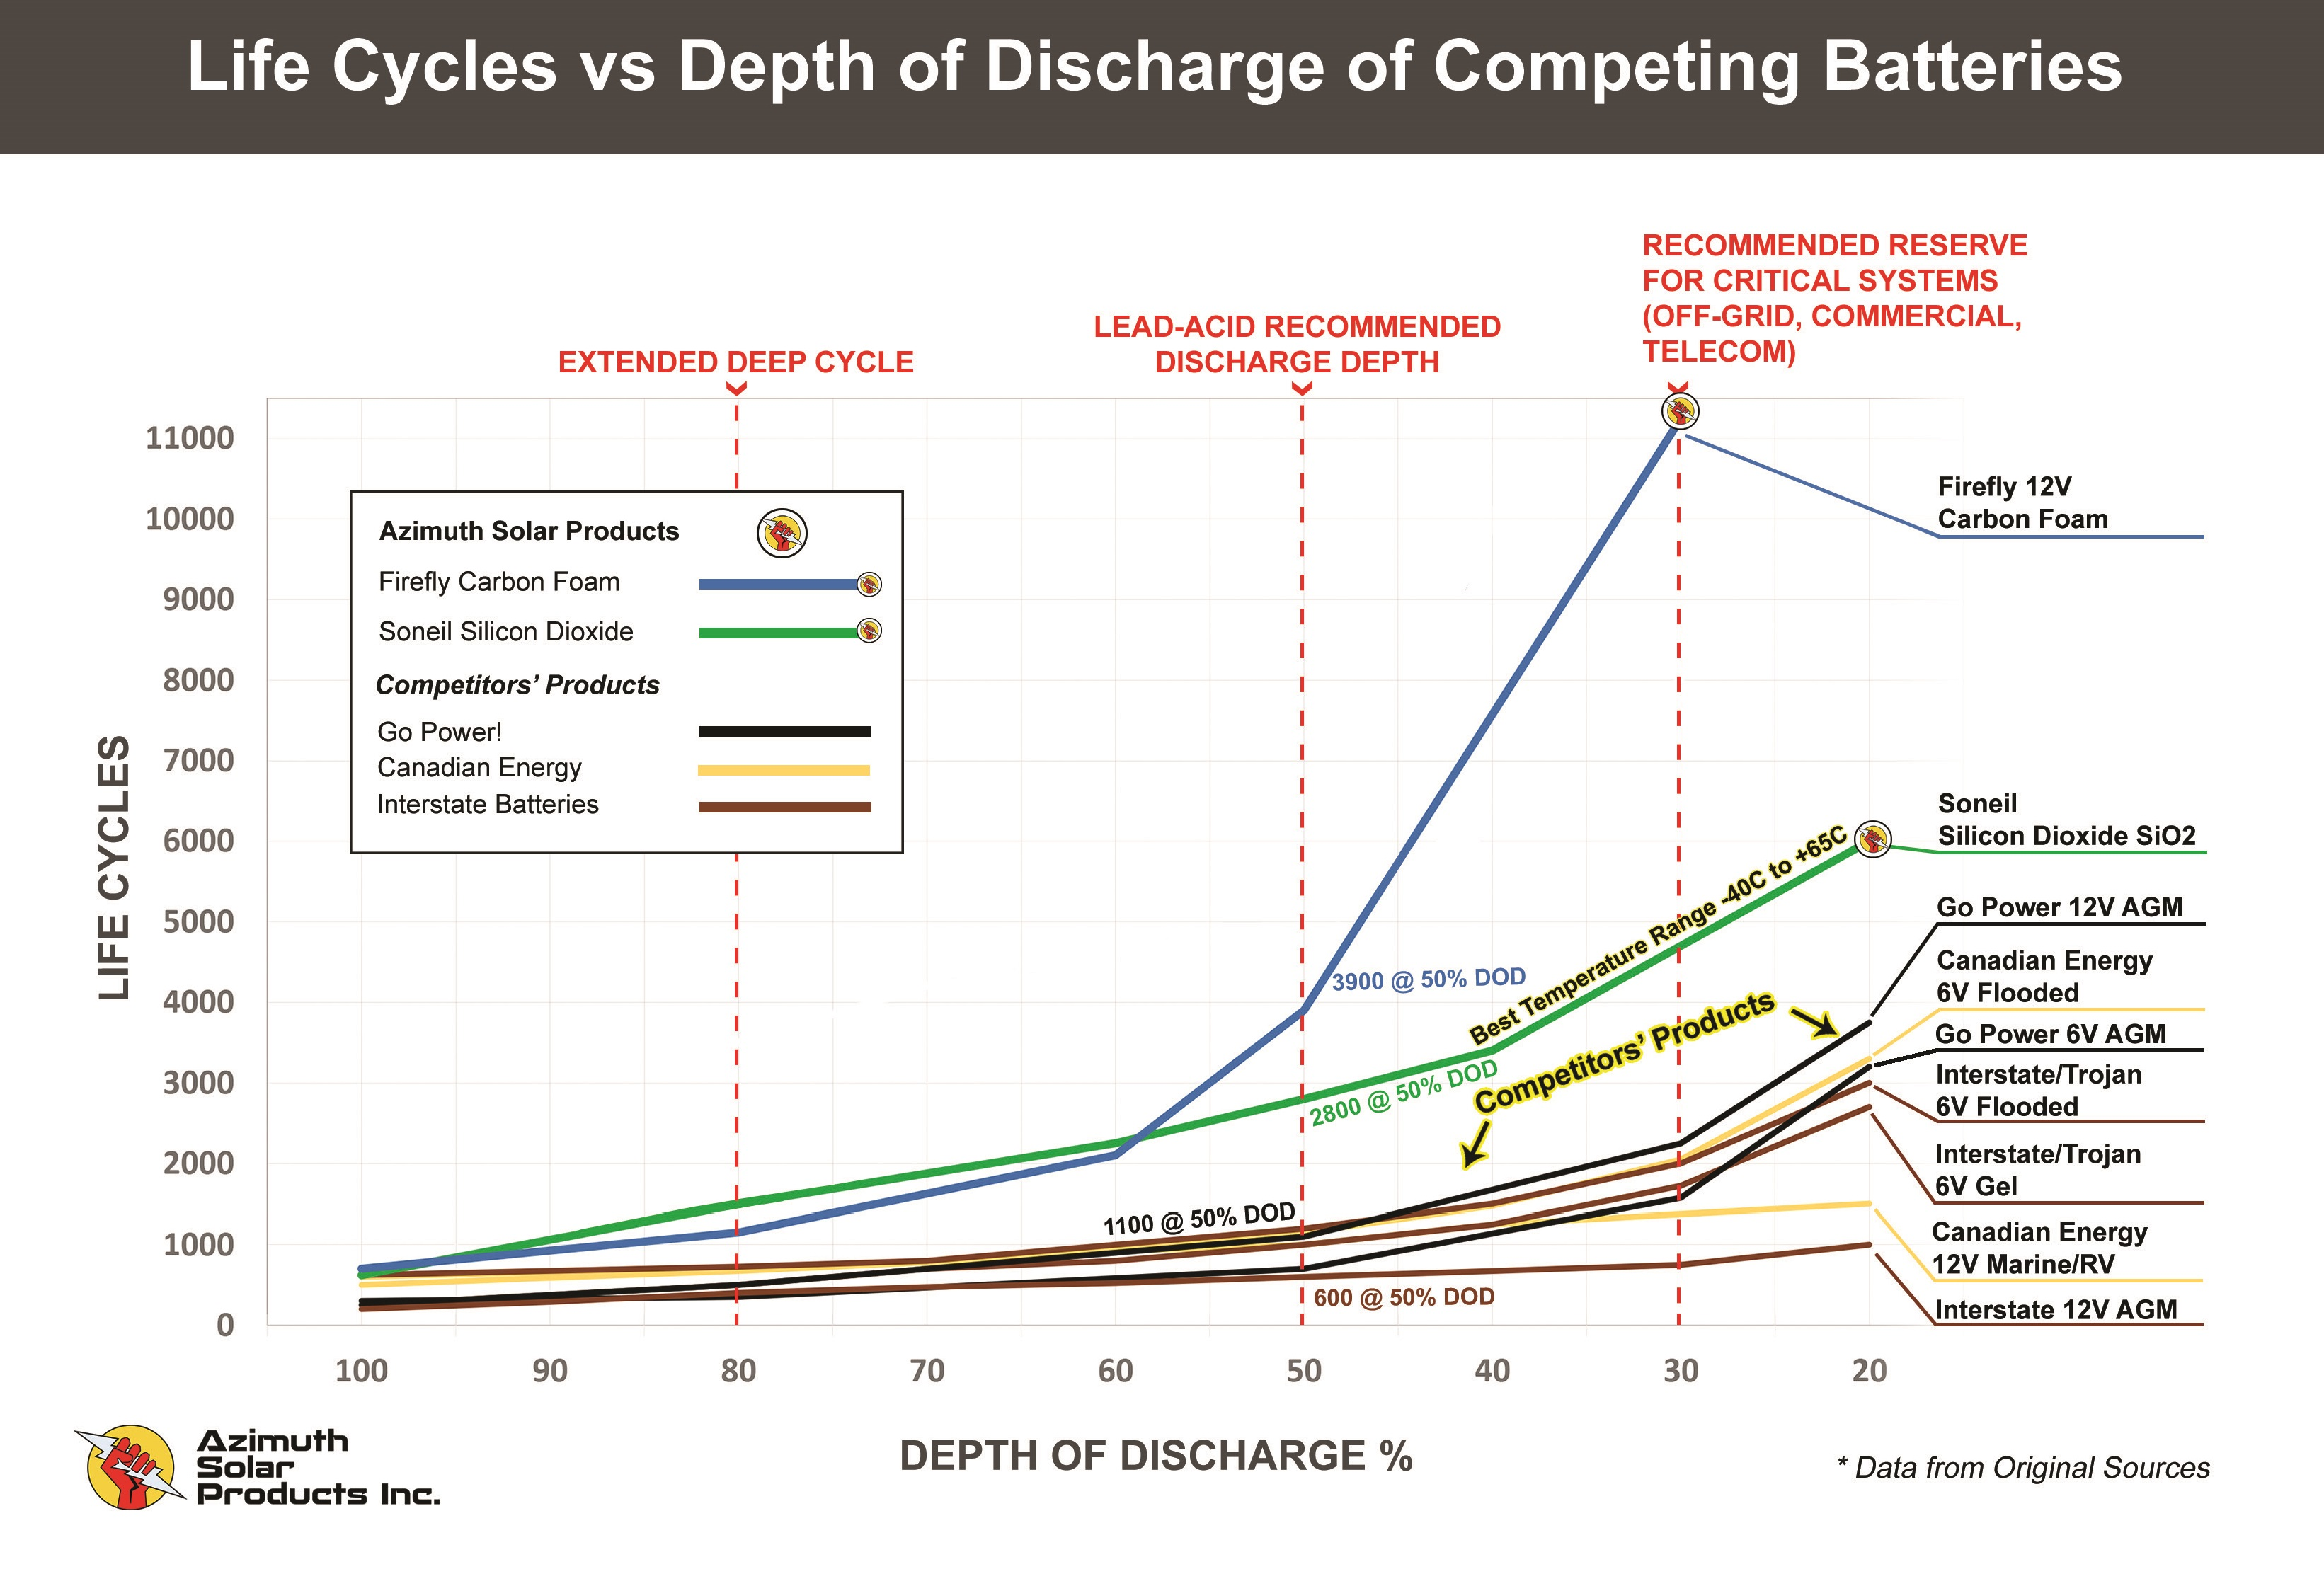 chart comparing life cycles vs DoD of competing batteries by Azimuth Solar